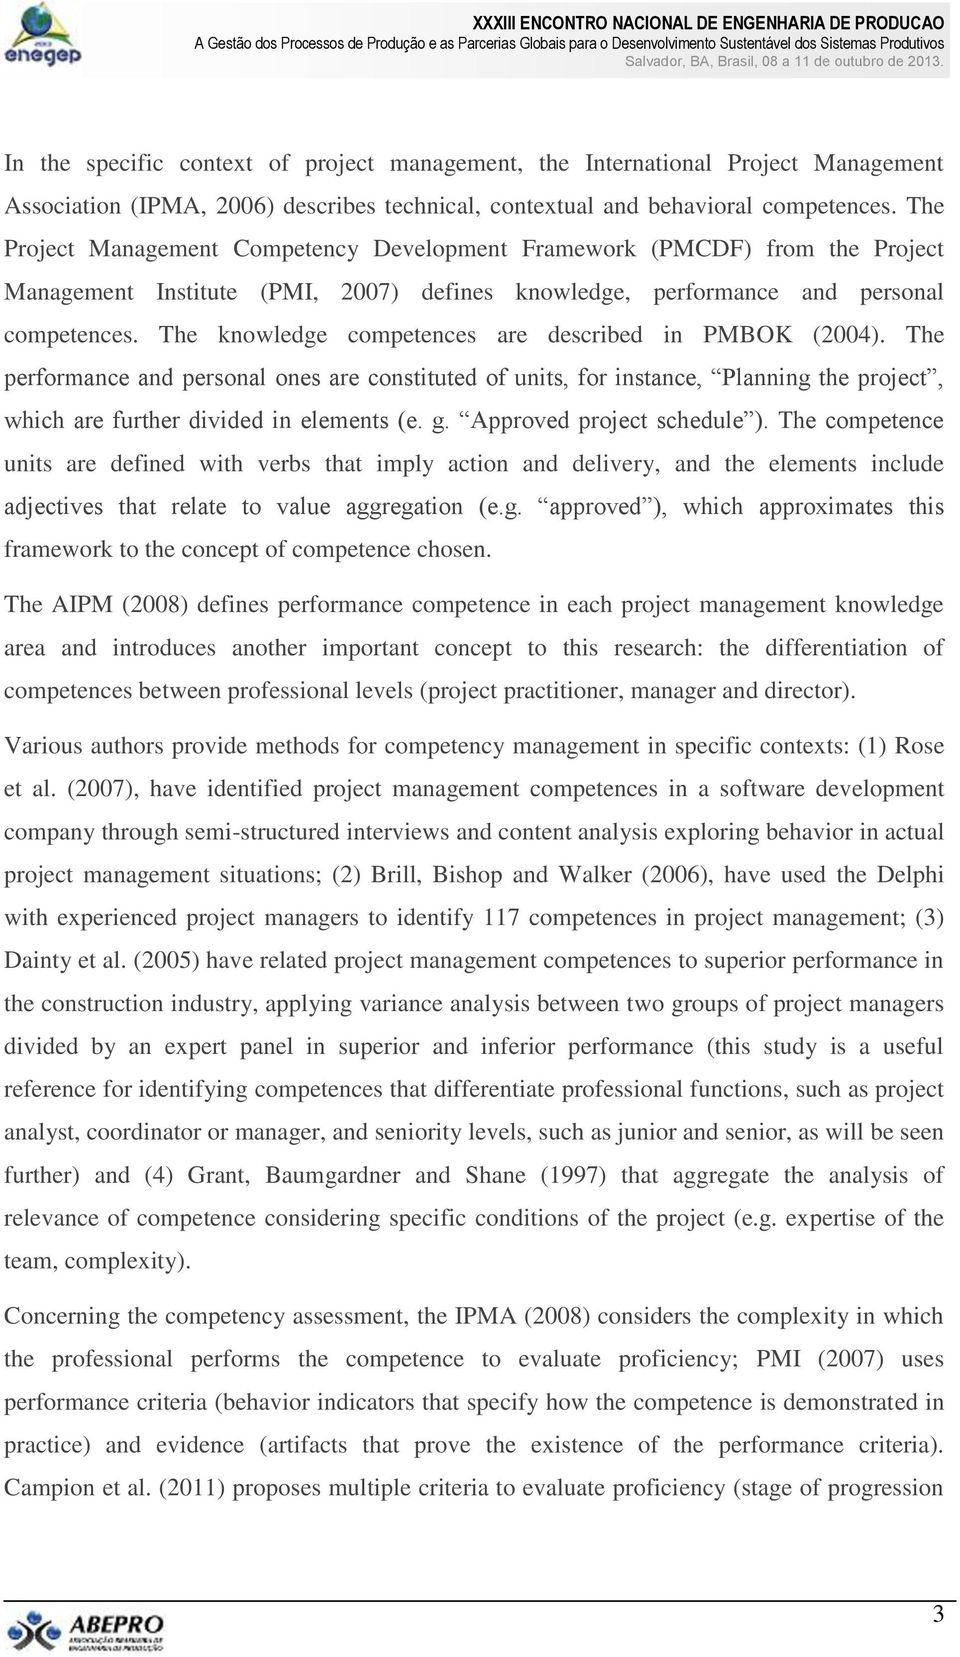 The knowledge competences are described in PMBOK (2004). The performance and personal ones are constituted of units, for instance, Planning the project, which are further divided in elements (e. g.